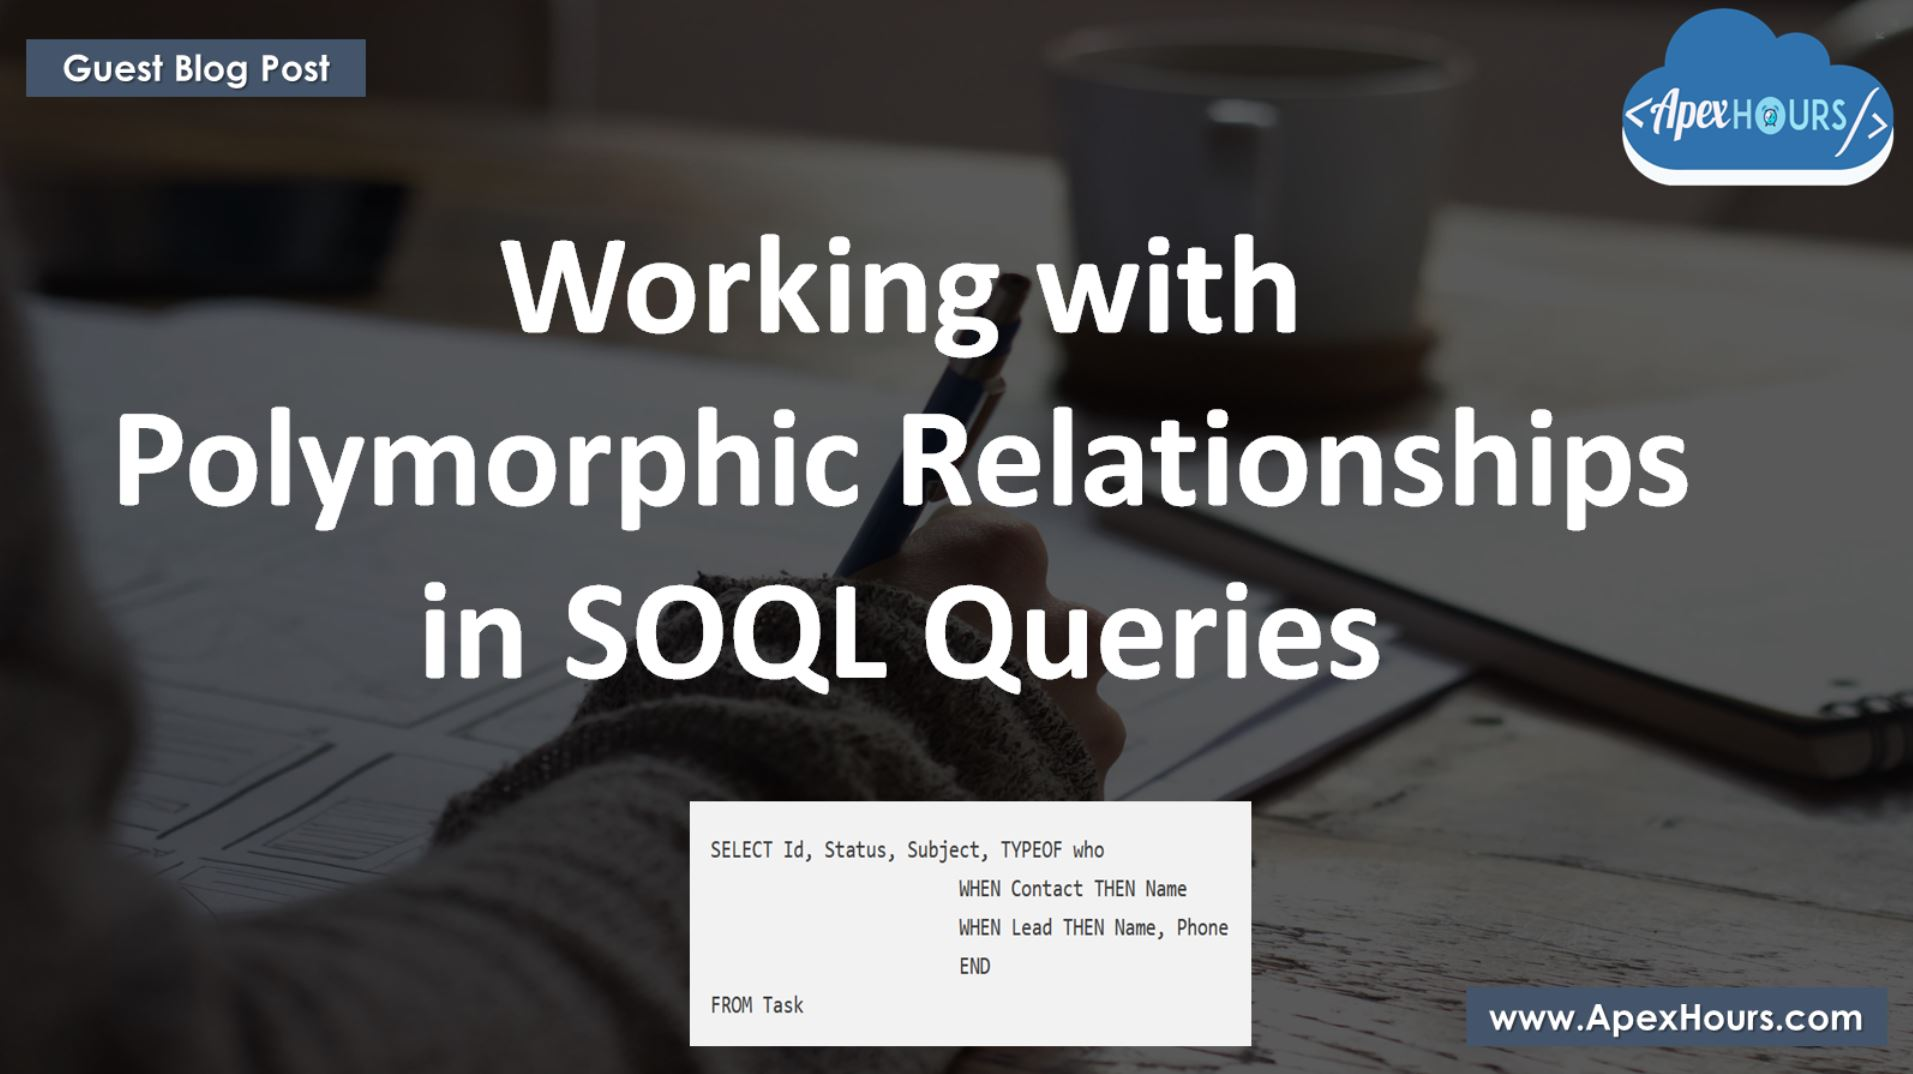 Polymorphic Relationships in Soql Queries